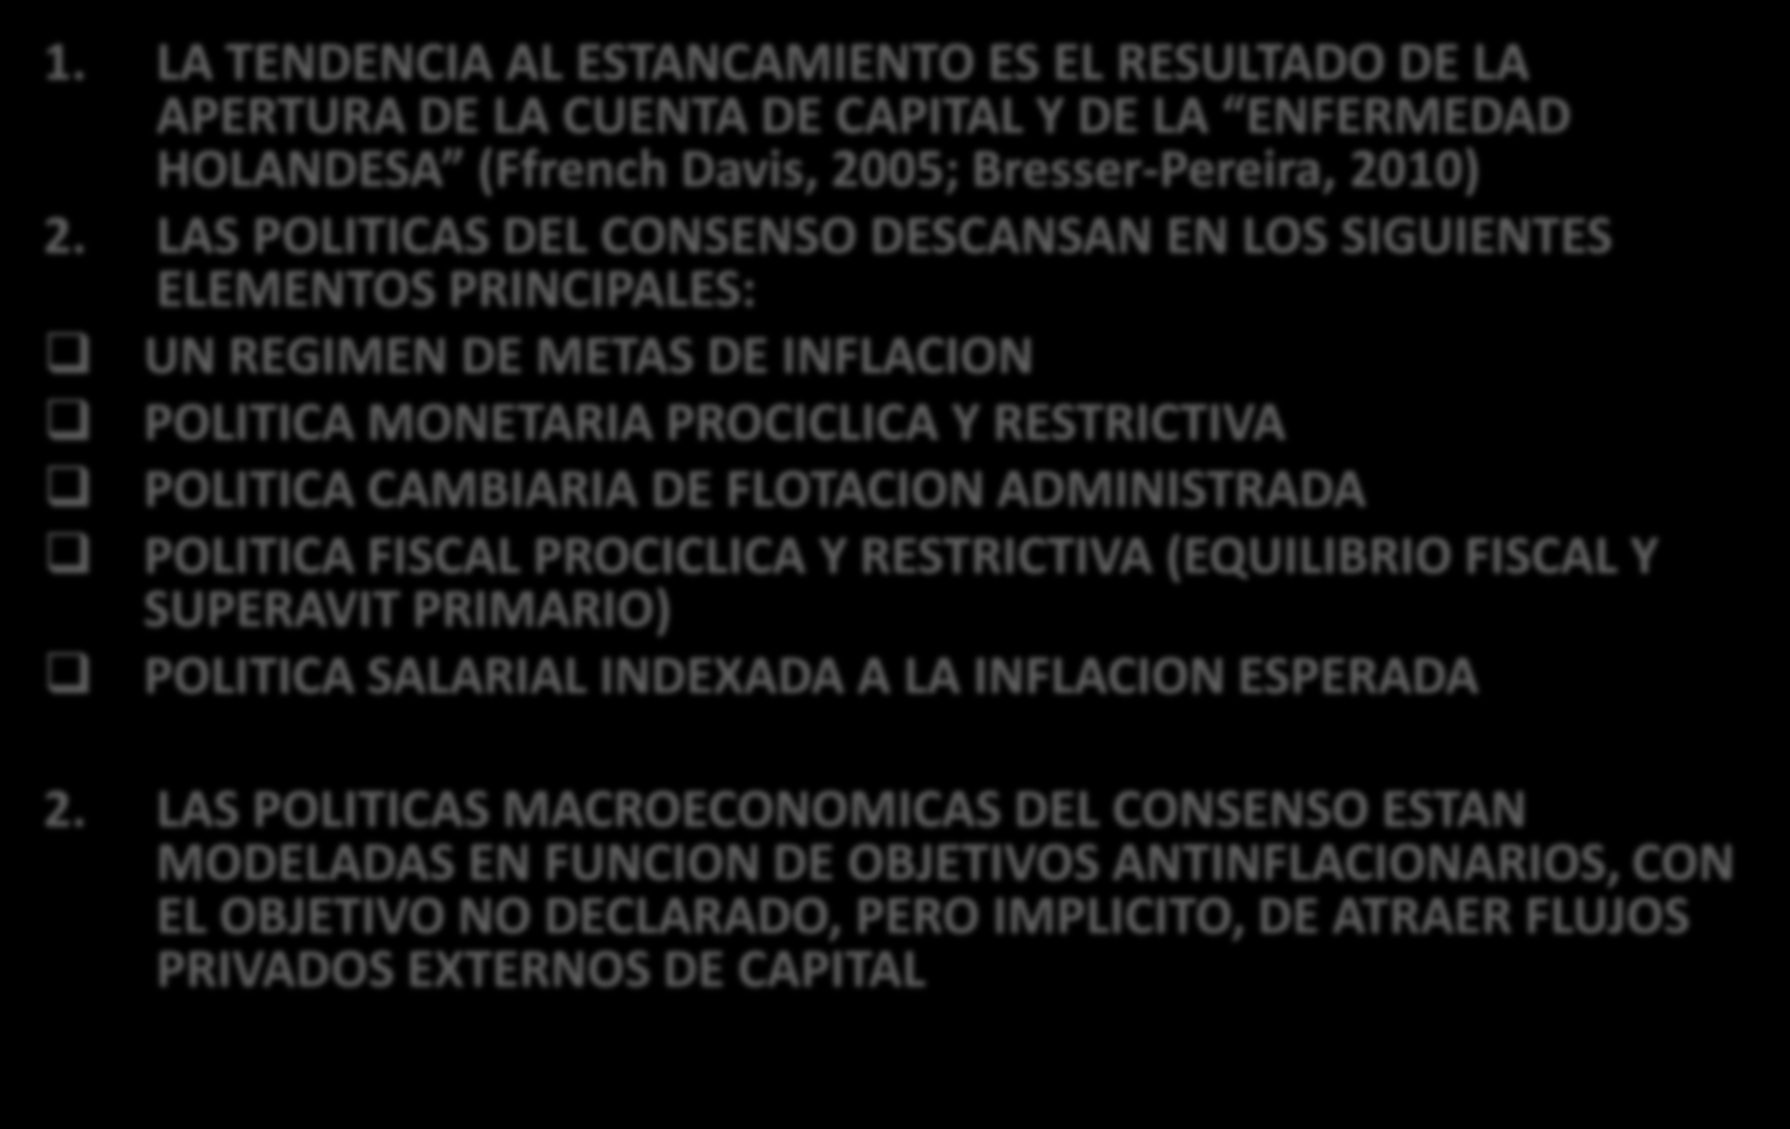 CONSENSO DE WASHINGTON Y ESTANCAMIENTO ECONOMICO 1.